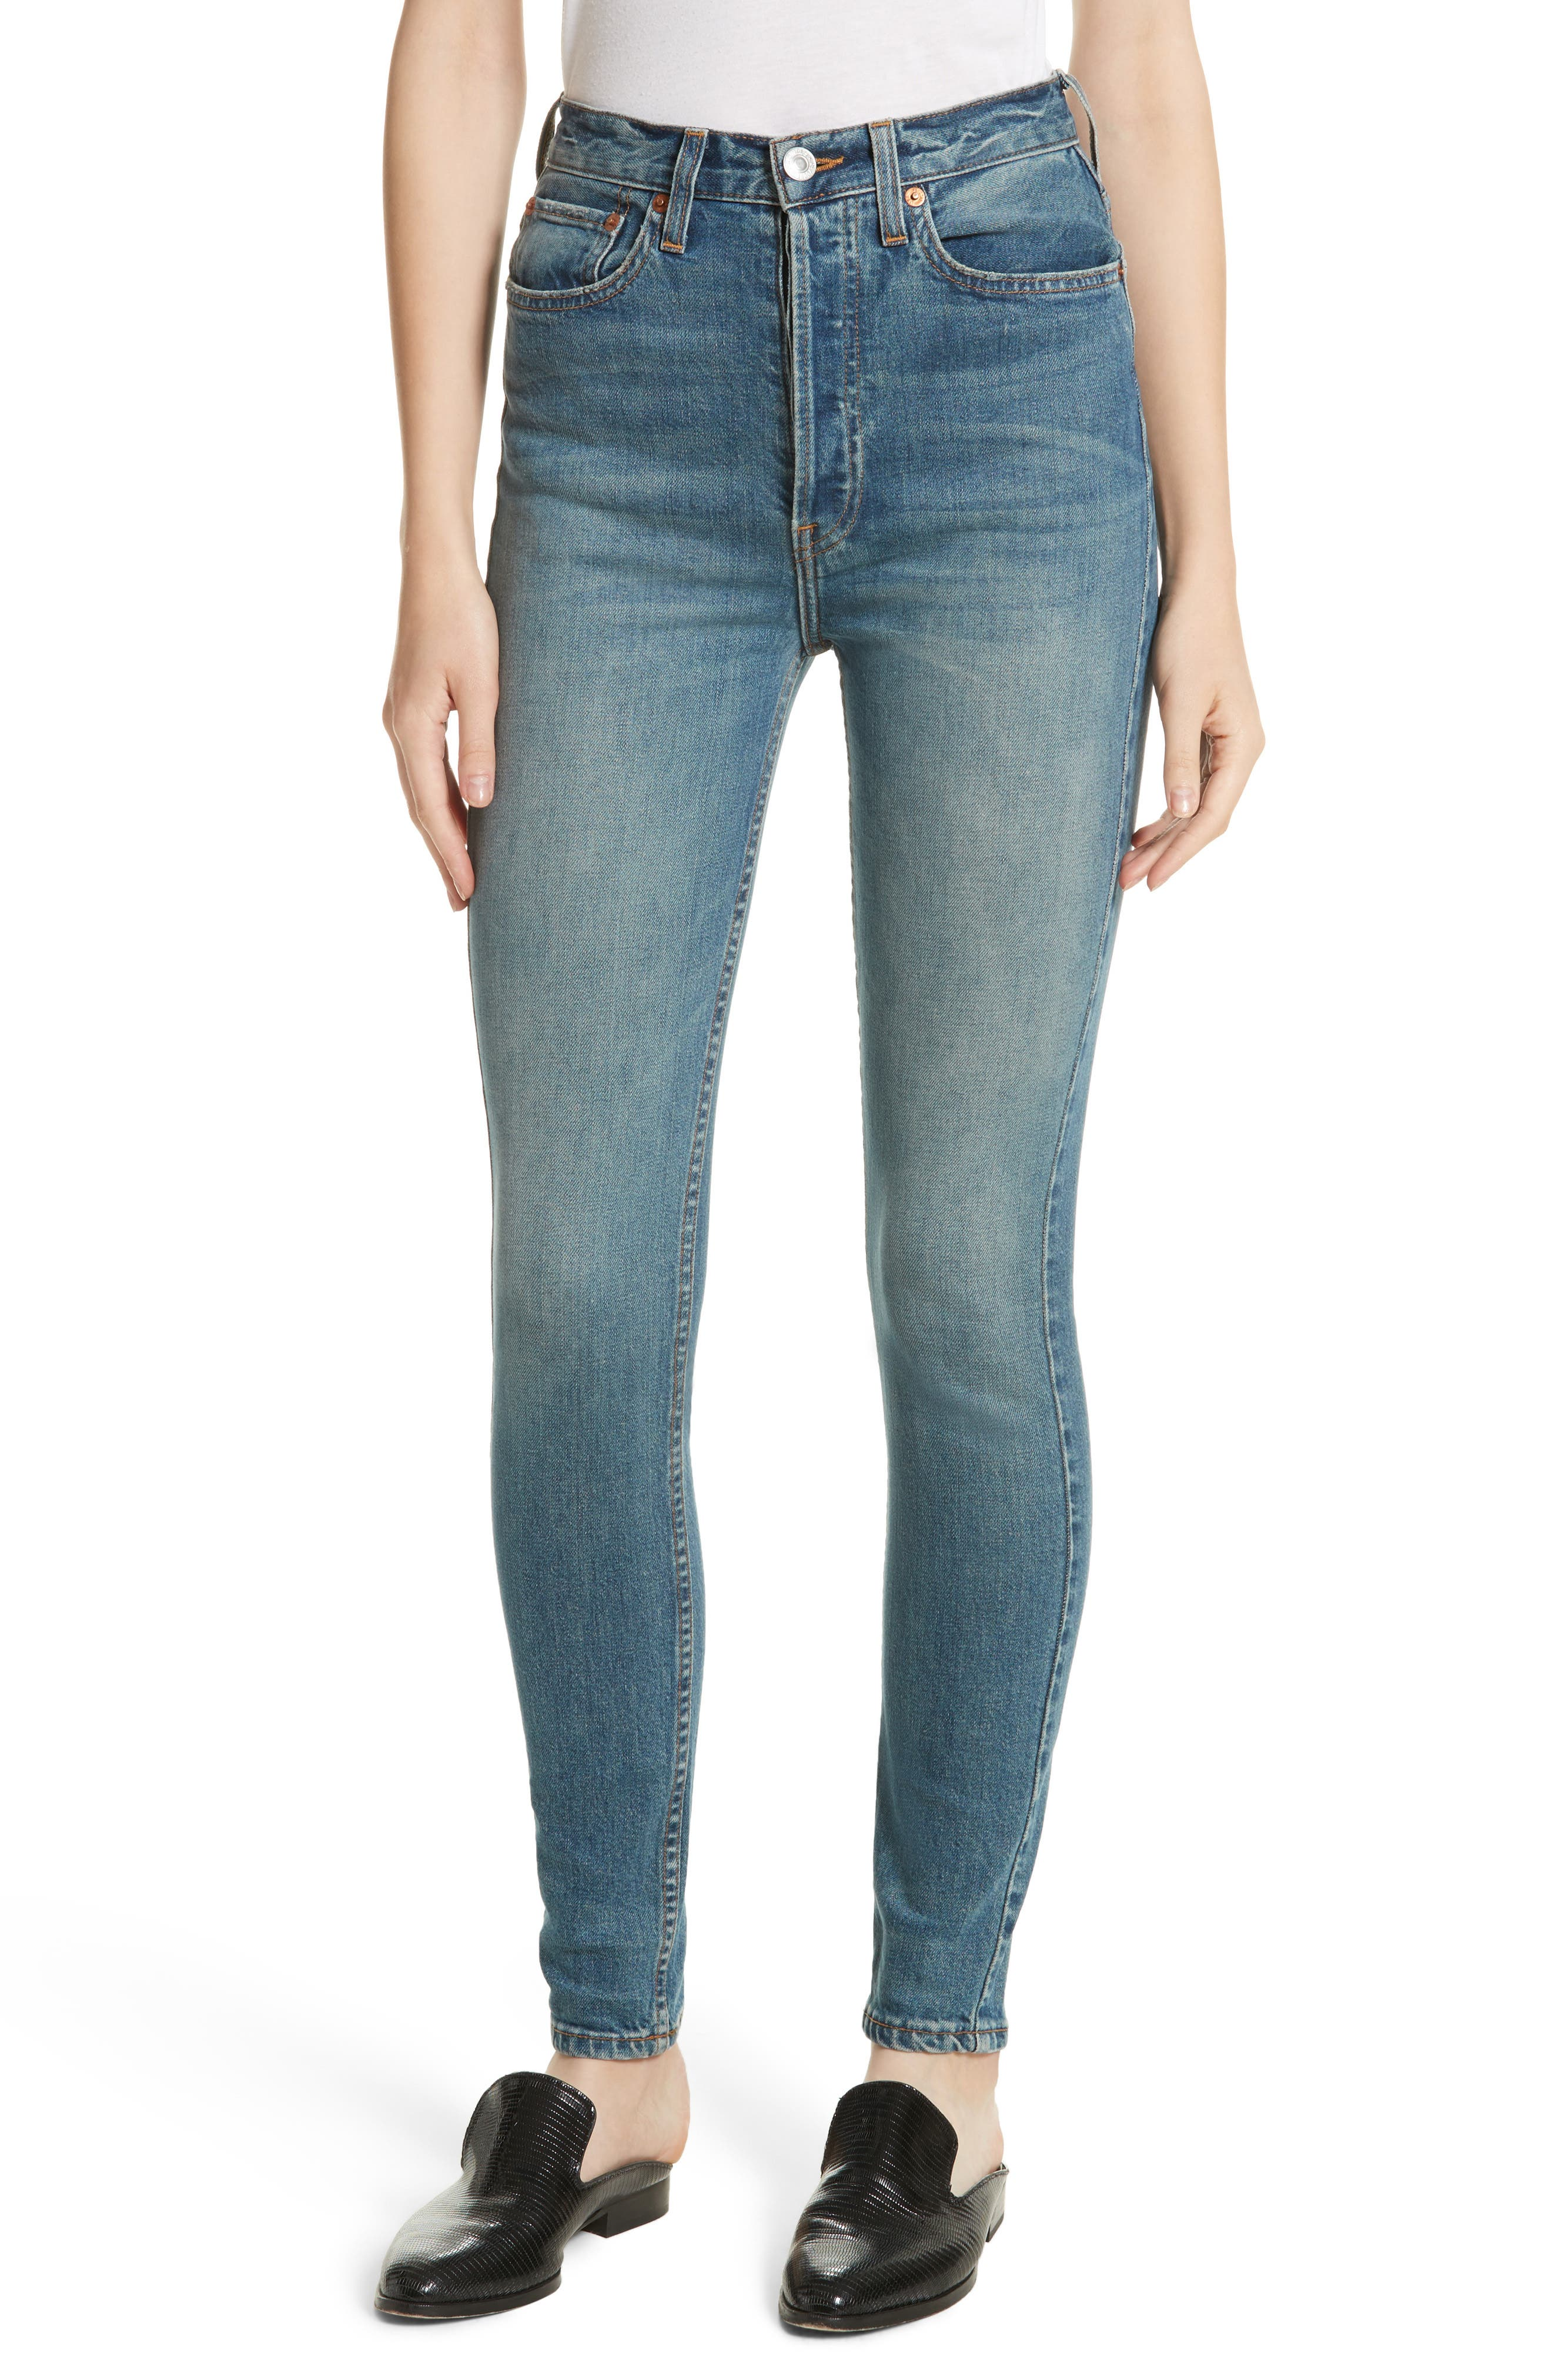 Alternate Image 1 Selected - Re/Done Originals Ultra High Waist Skinny Jeans